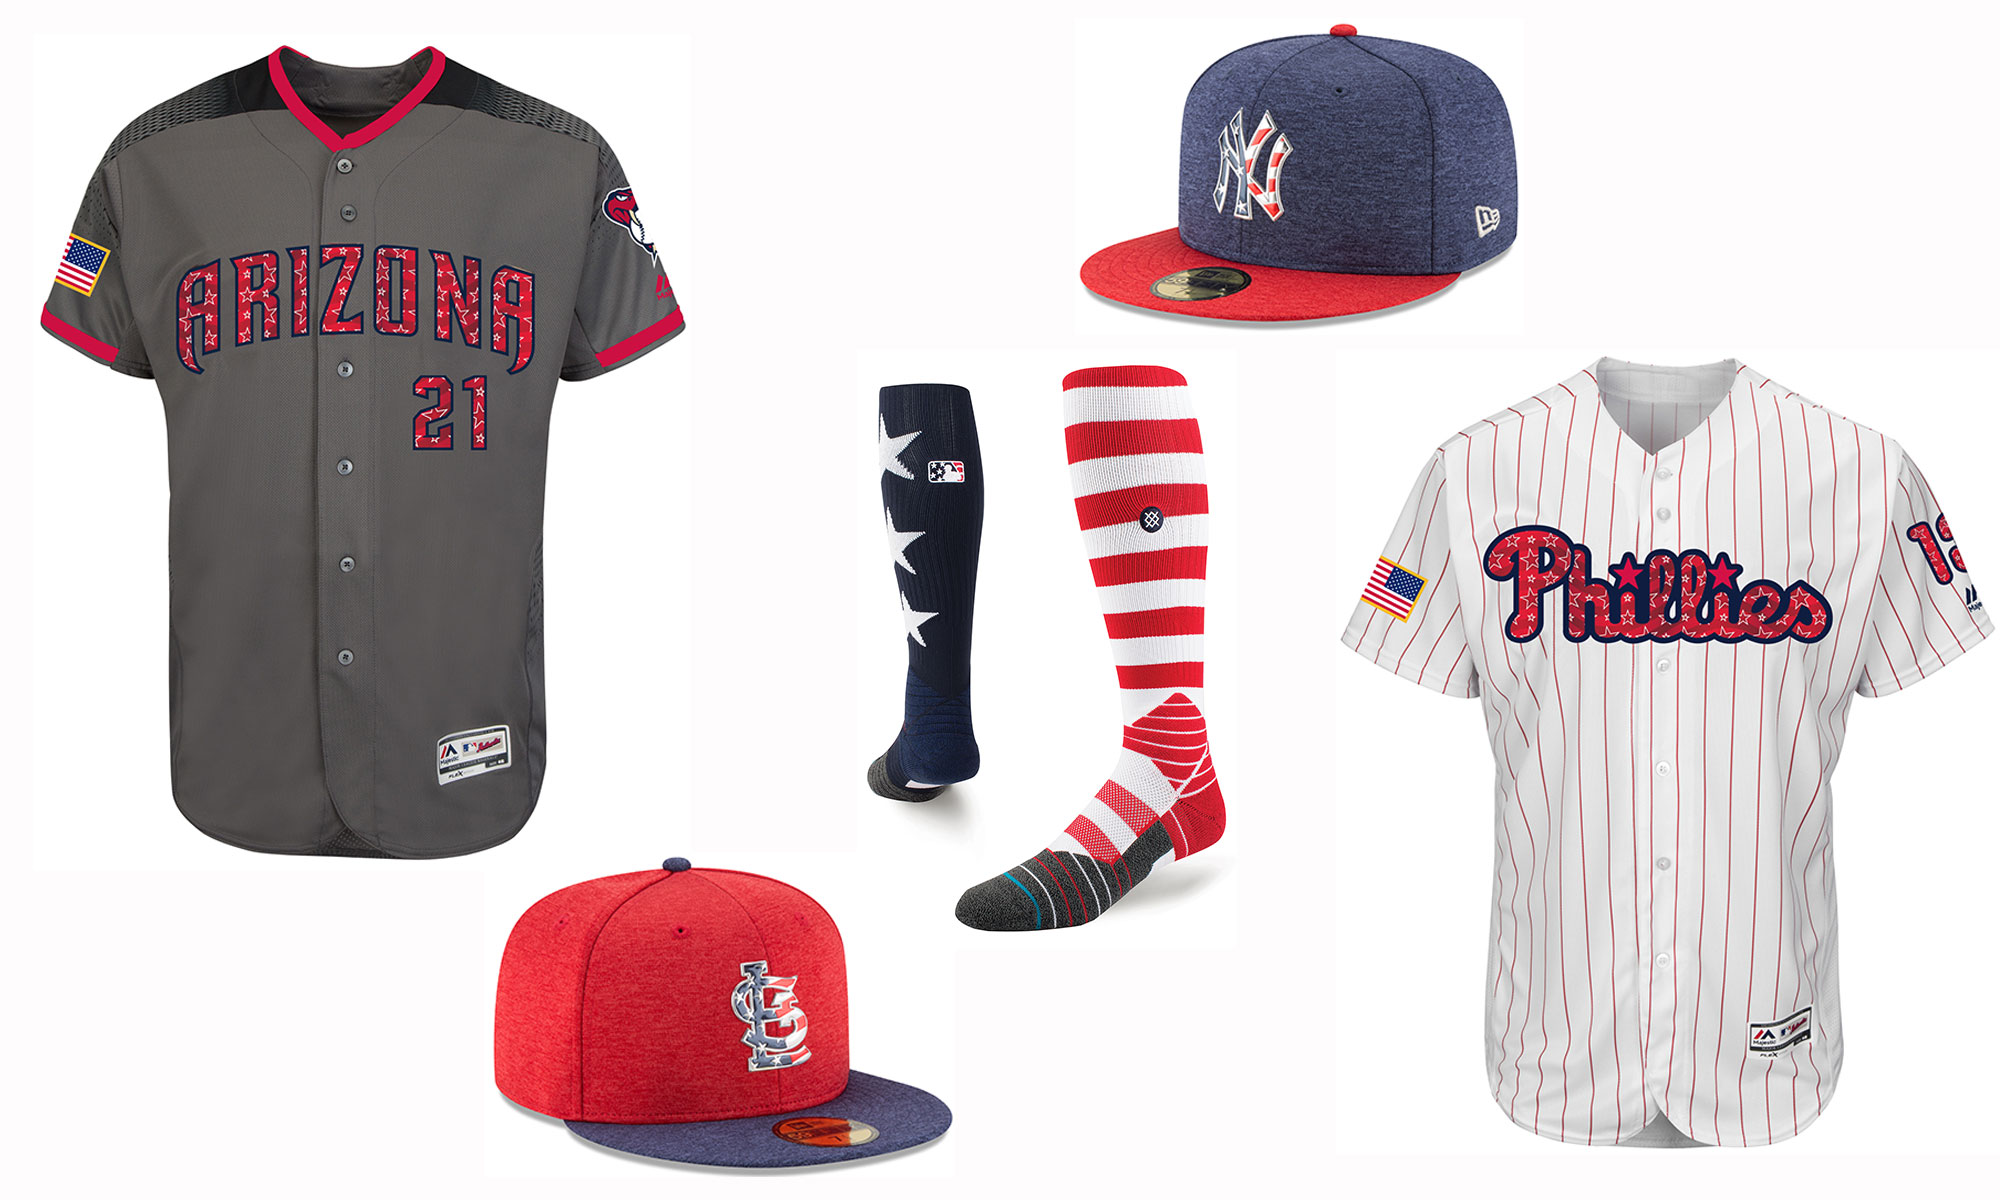 HOME RUN DERBY (JULY 9-10) The uniforms for this year s Home Run Derby ba8462960d1